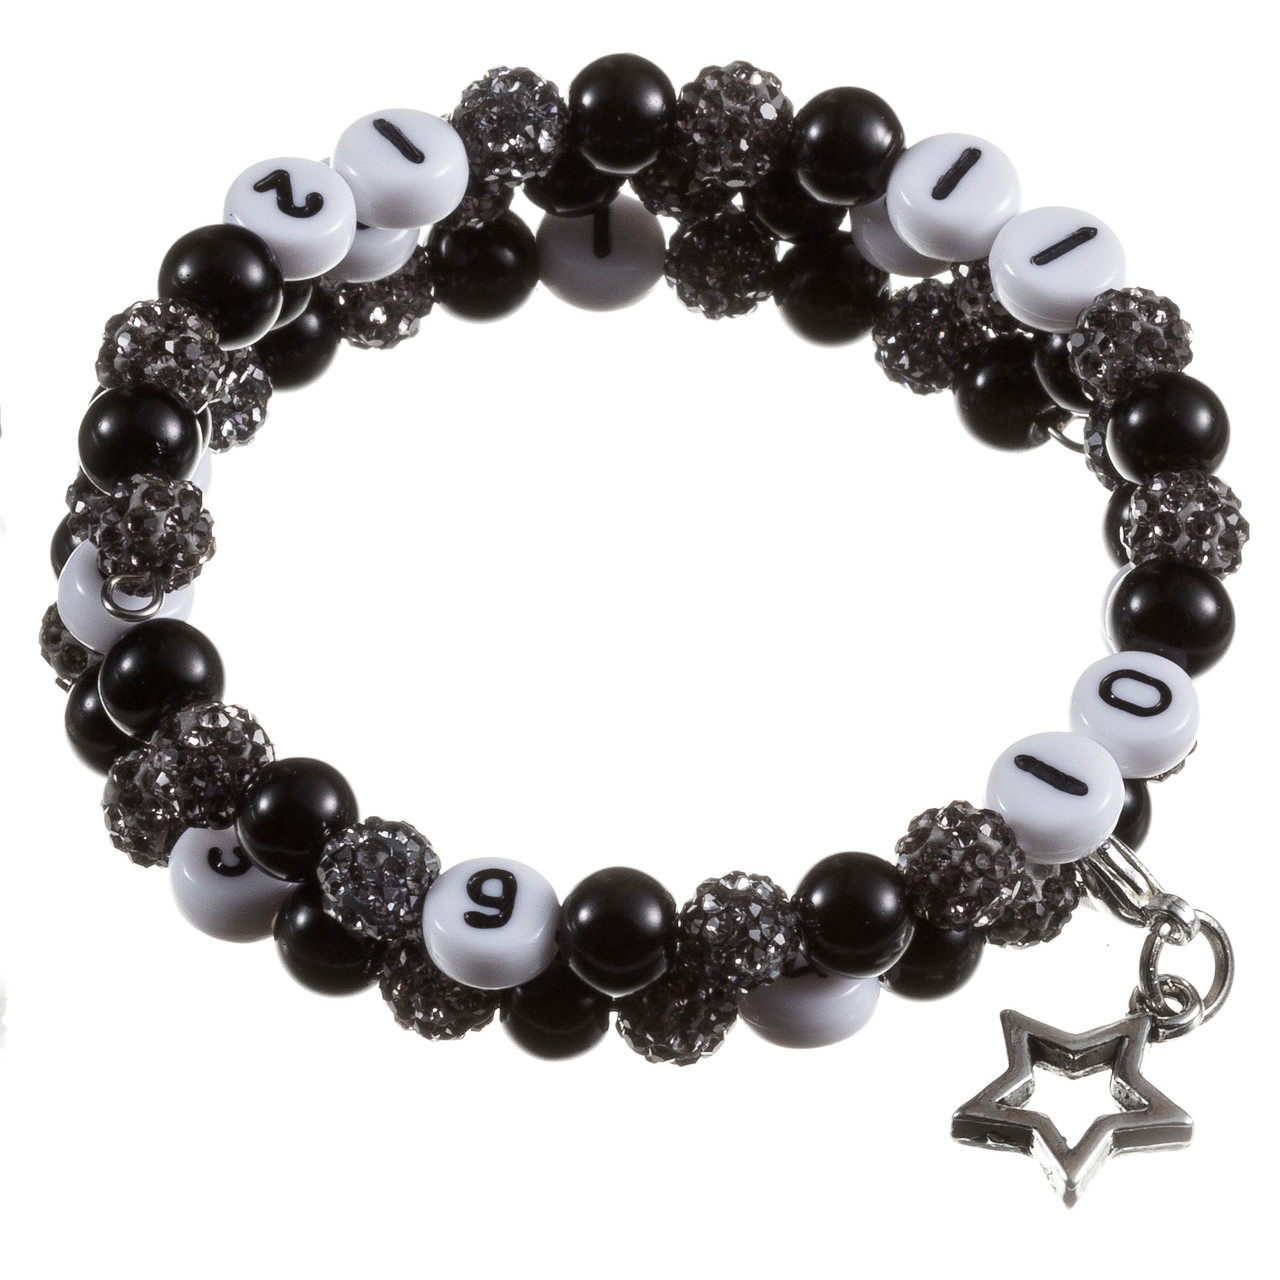 Stillarmband Black Strass-/Glaswachsperlen